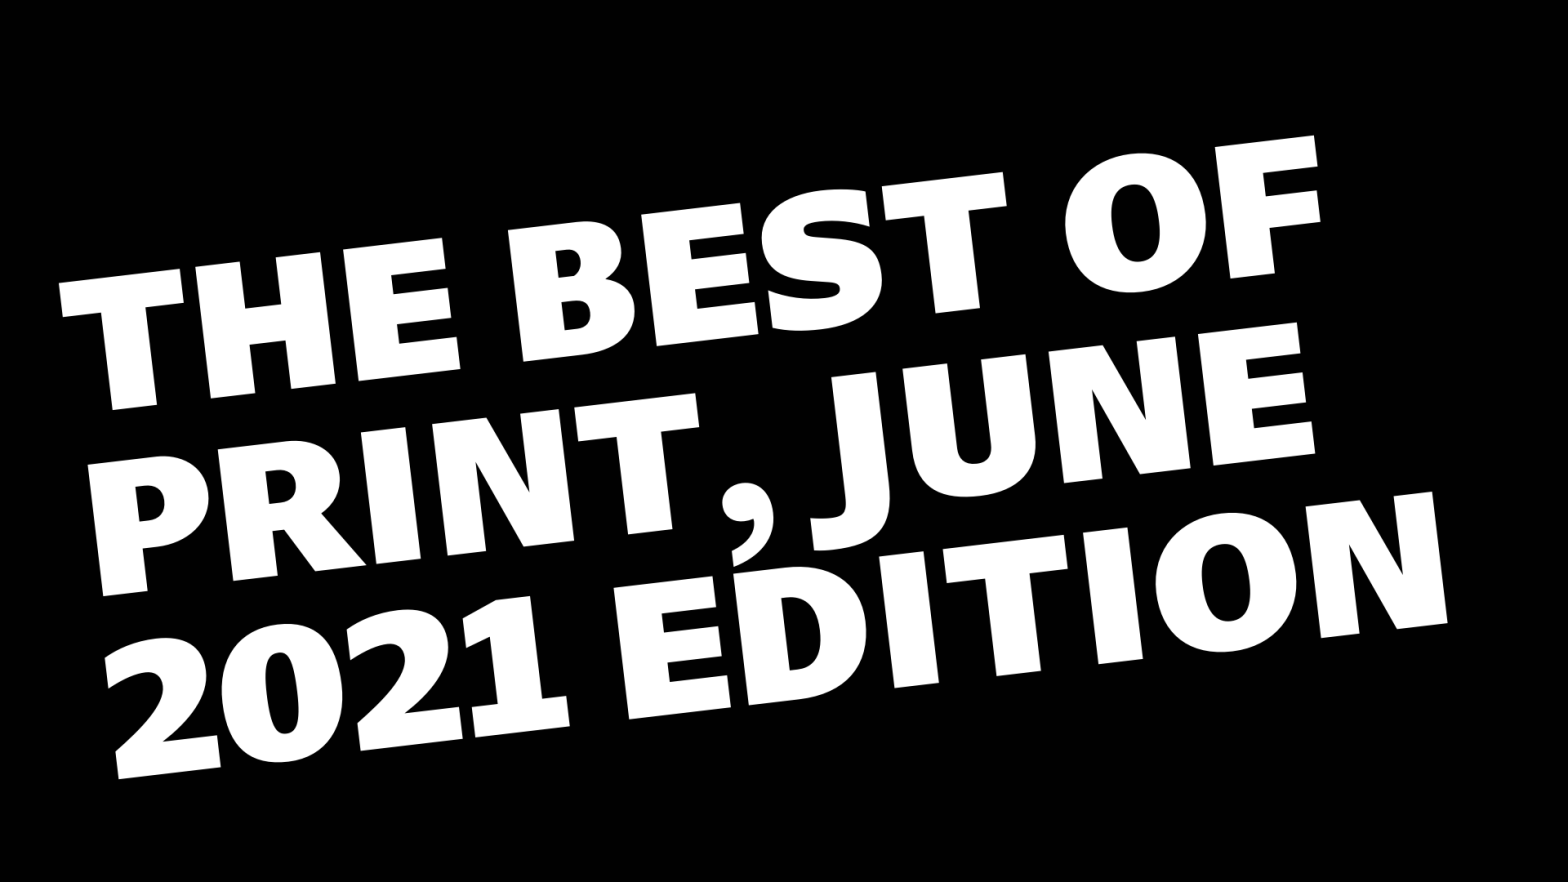 Thumbnail for The Best of PRINT, June 2021 Edition